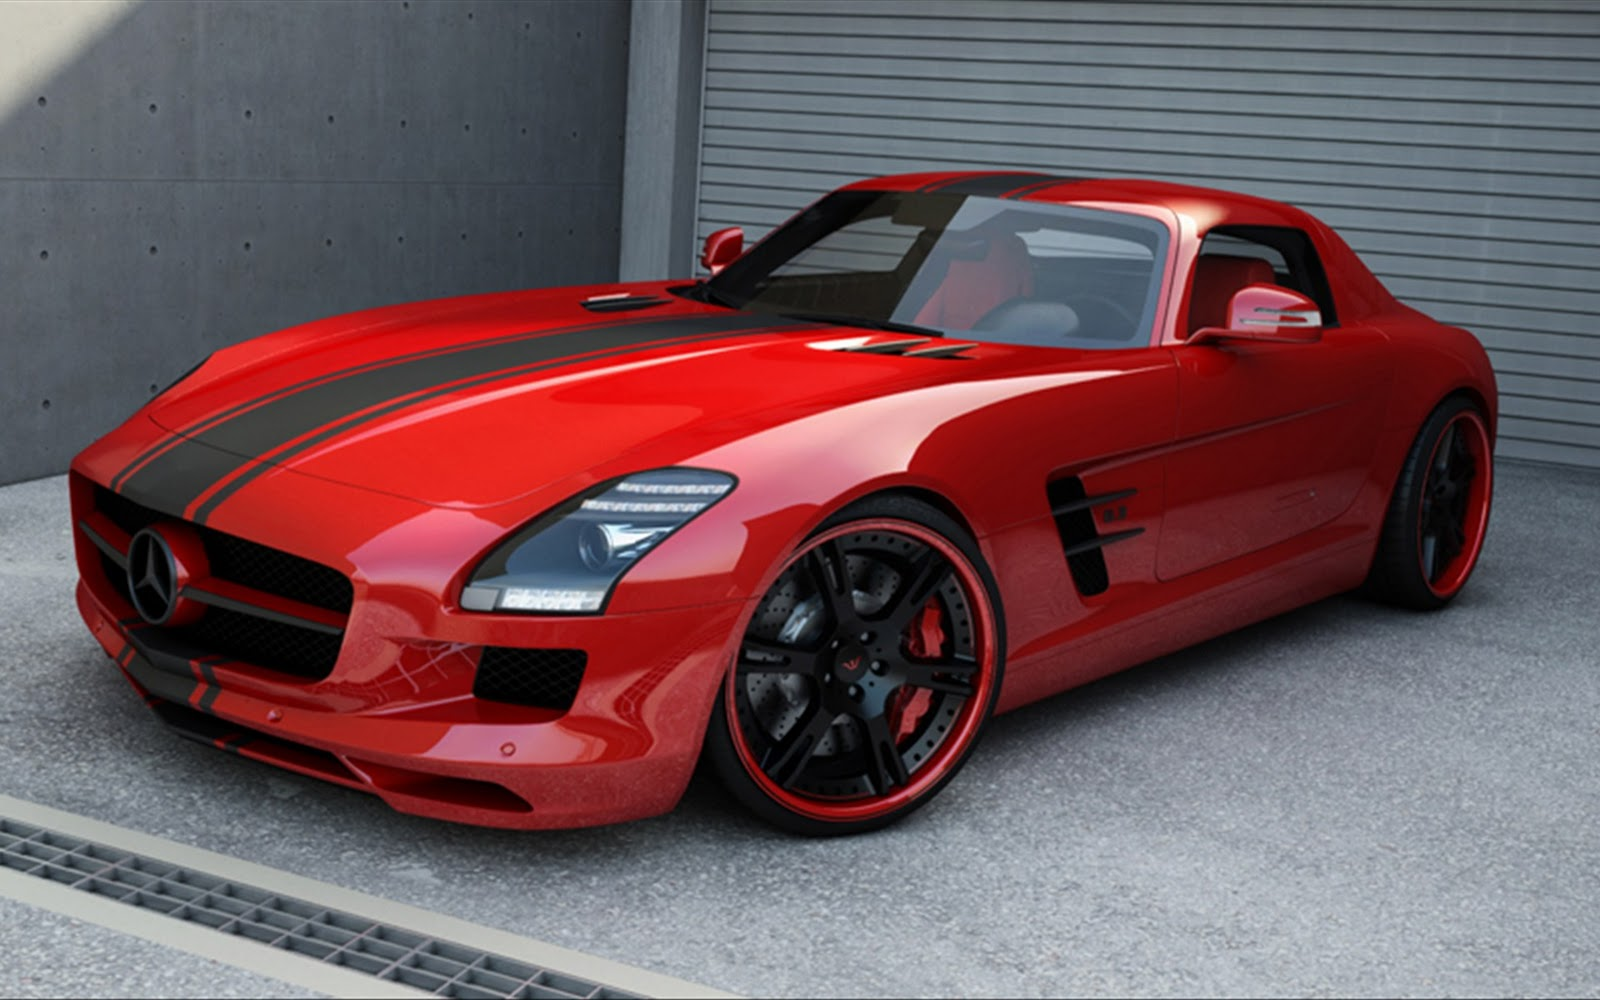 Car Wallpapers Download High Resolution Hd Car Wallpapers For